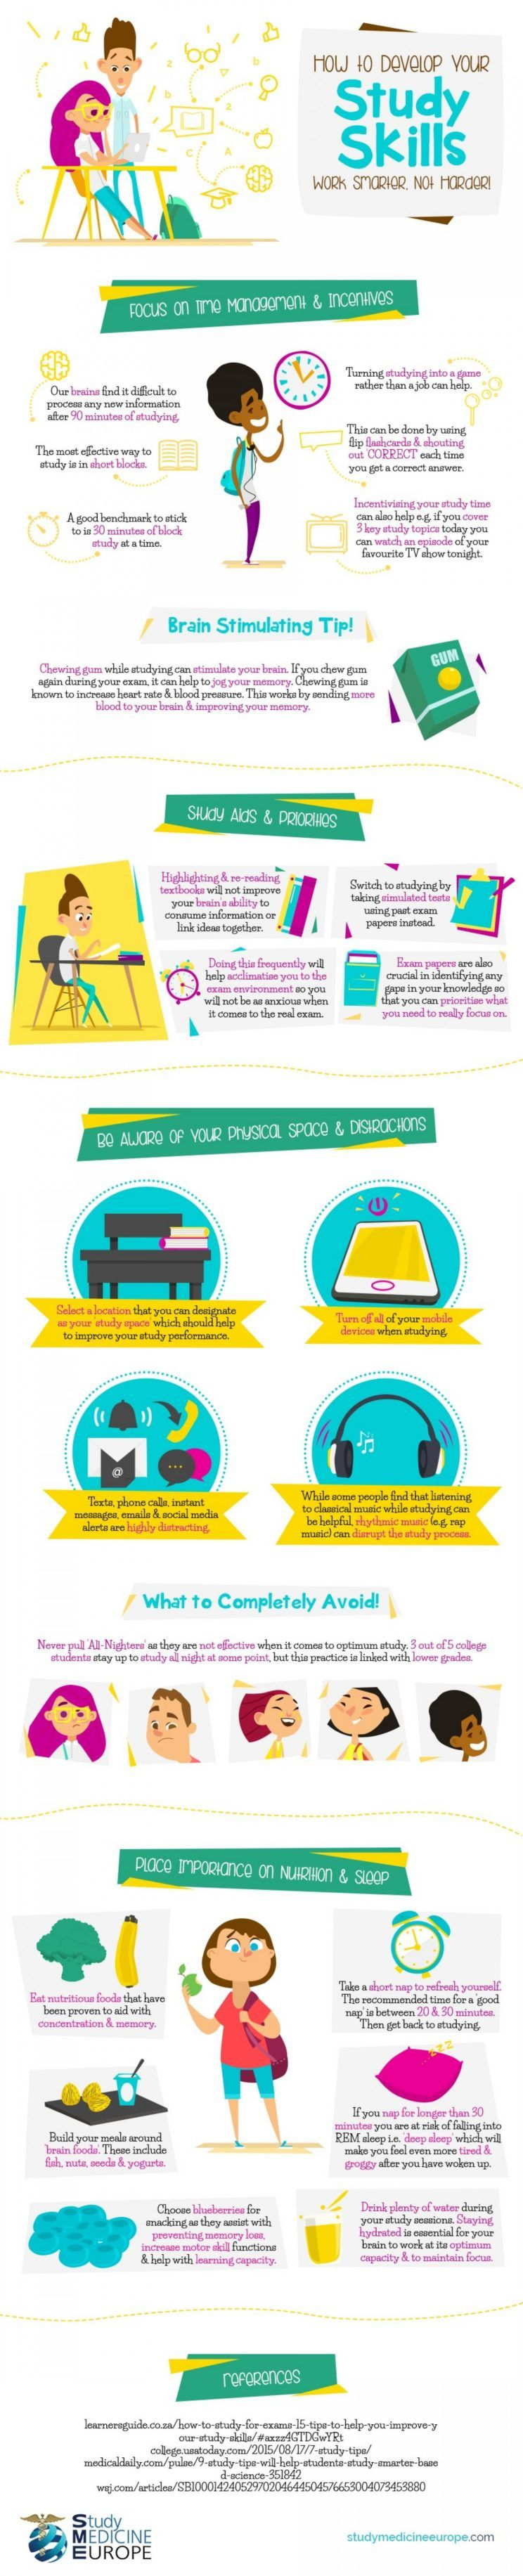 How To Develop Your Study Skills #Infographic